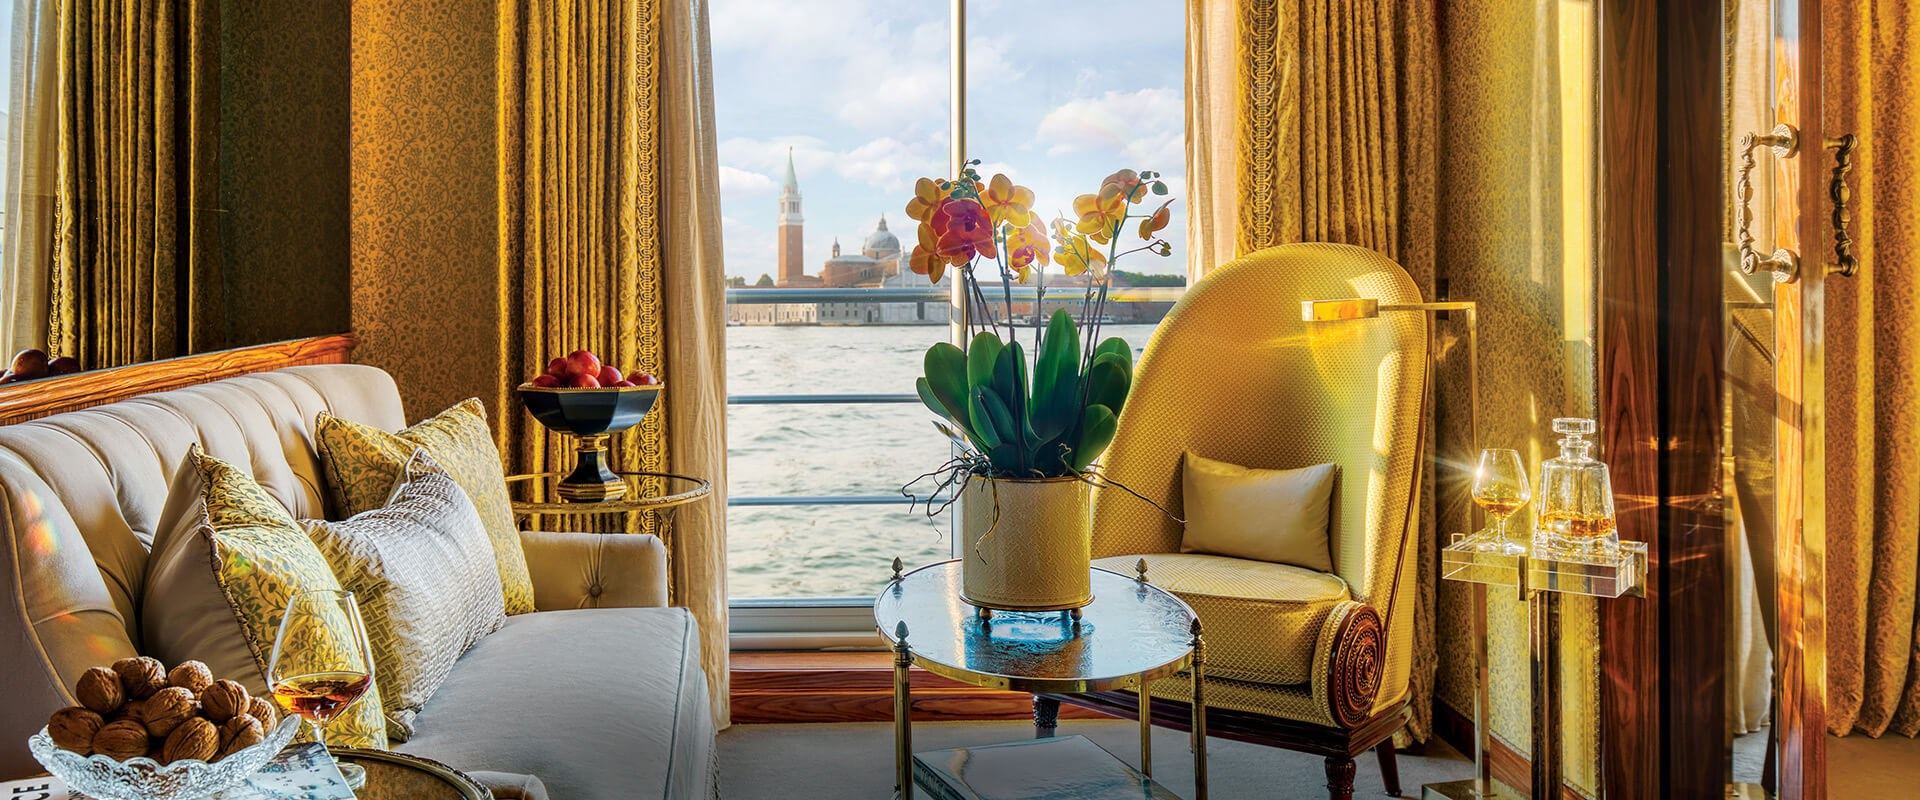 Introducing the S.S. La Venezia New for 2021